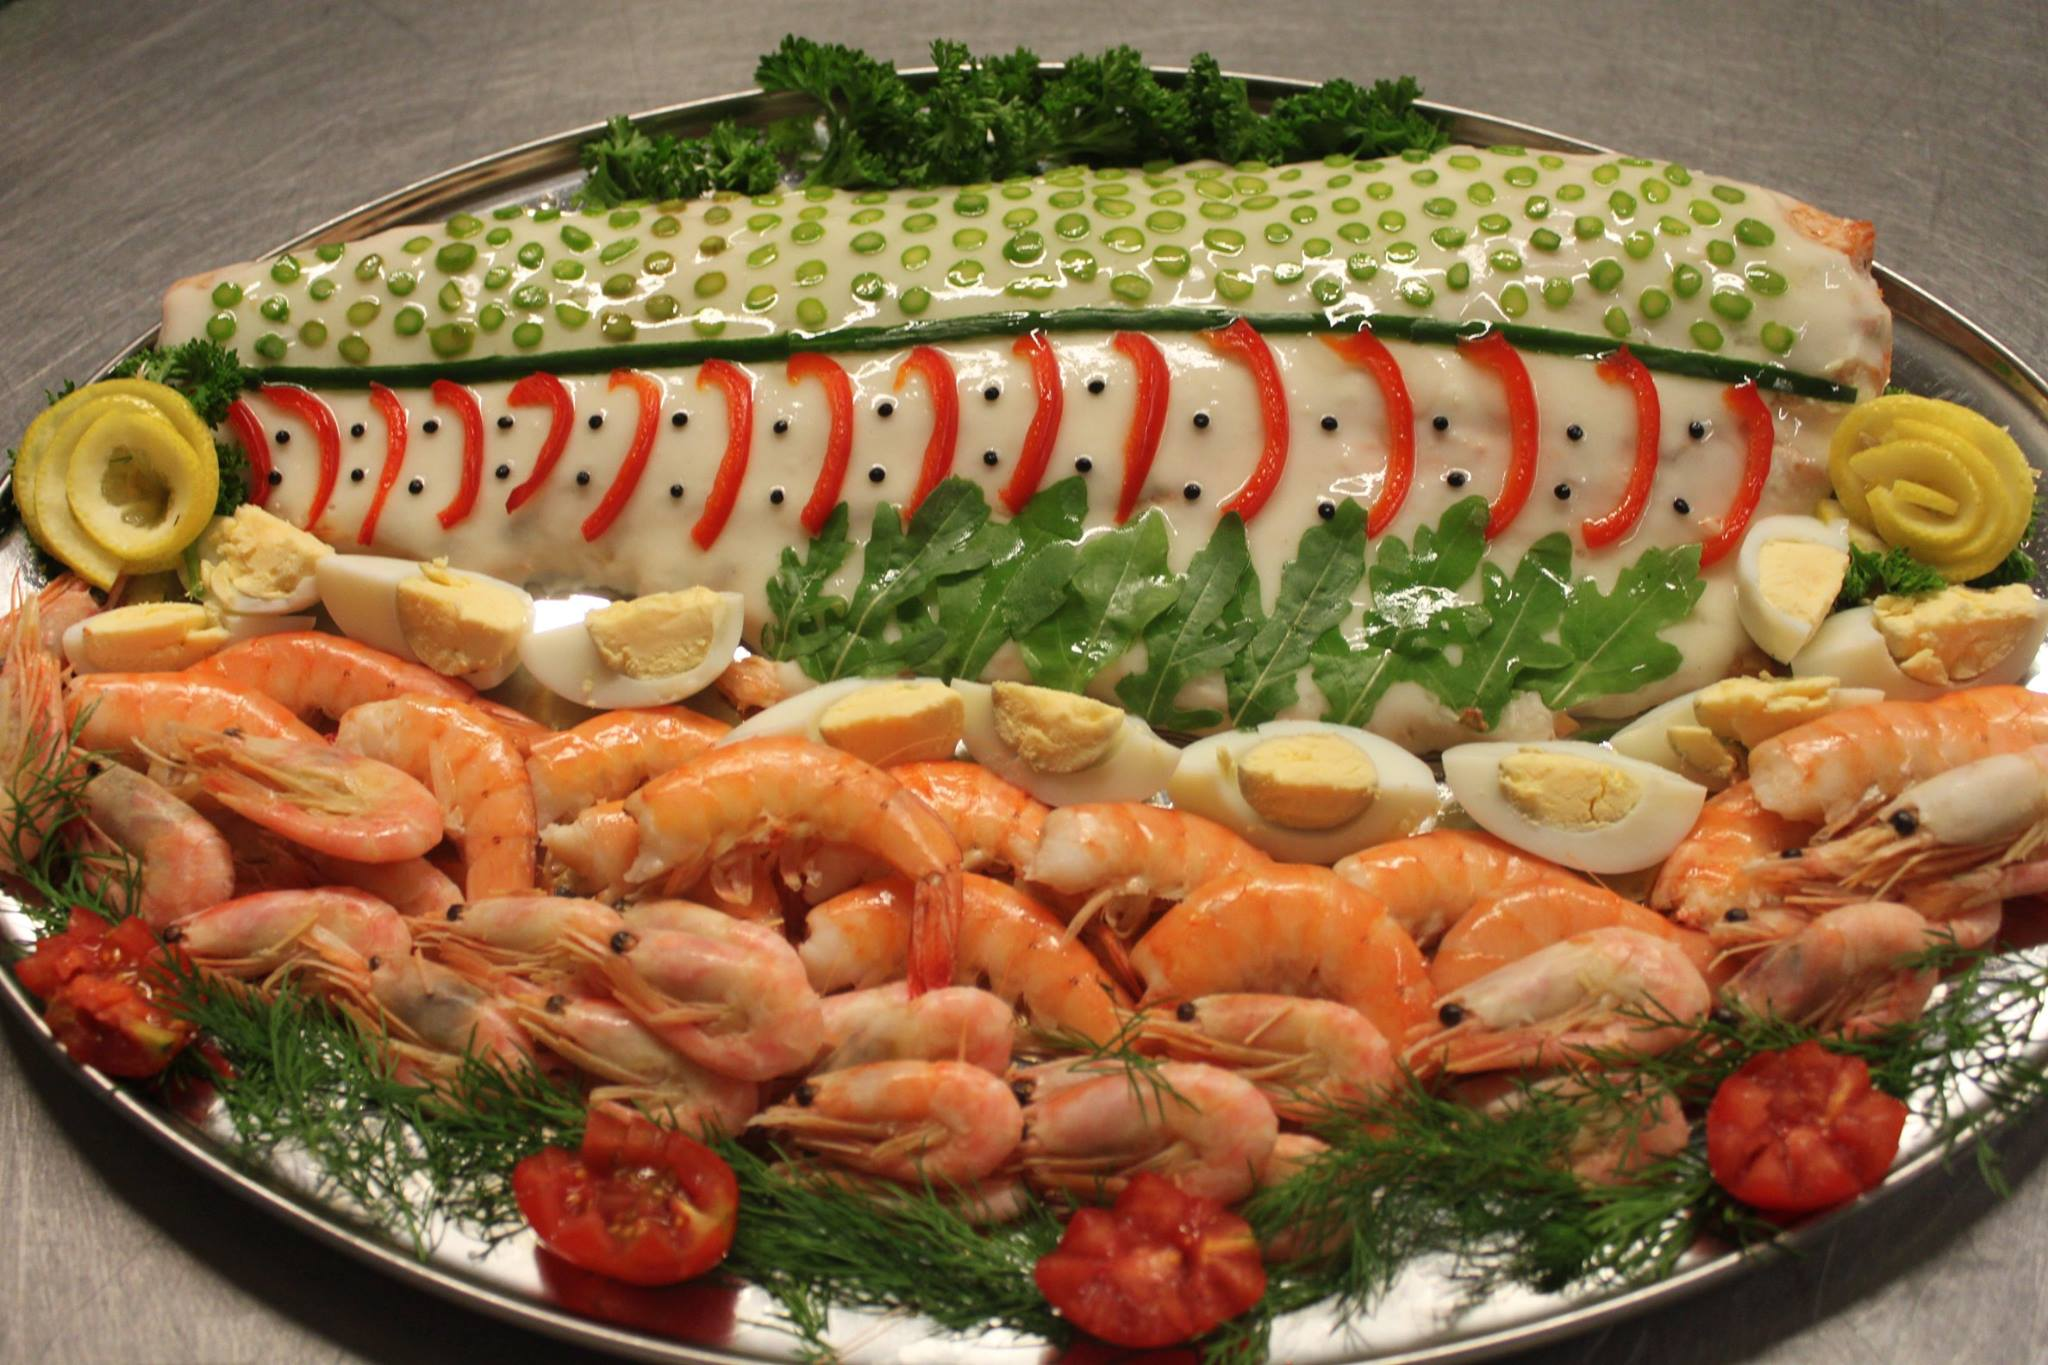 Fillet of salmon coated in a chaud froid sauce and decorated red peppers and slices of cut asparagus garnished with whole prawns and boiled eggs.